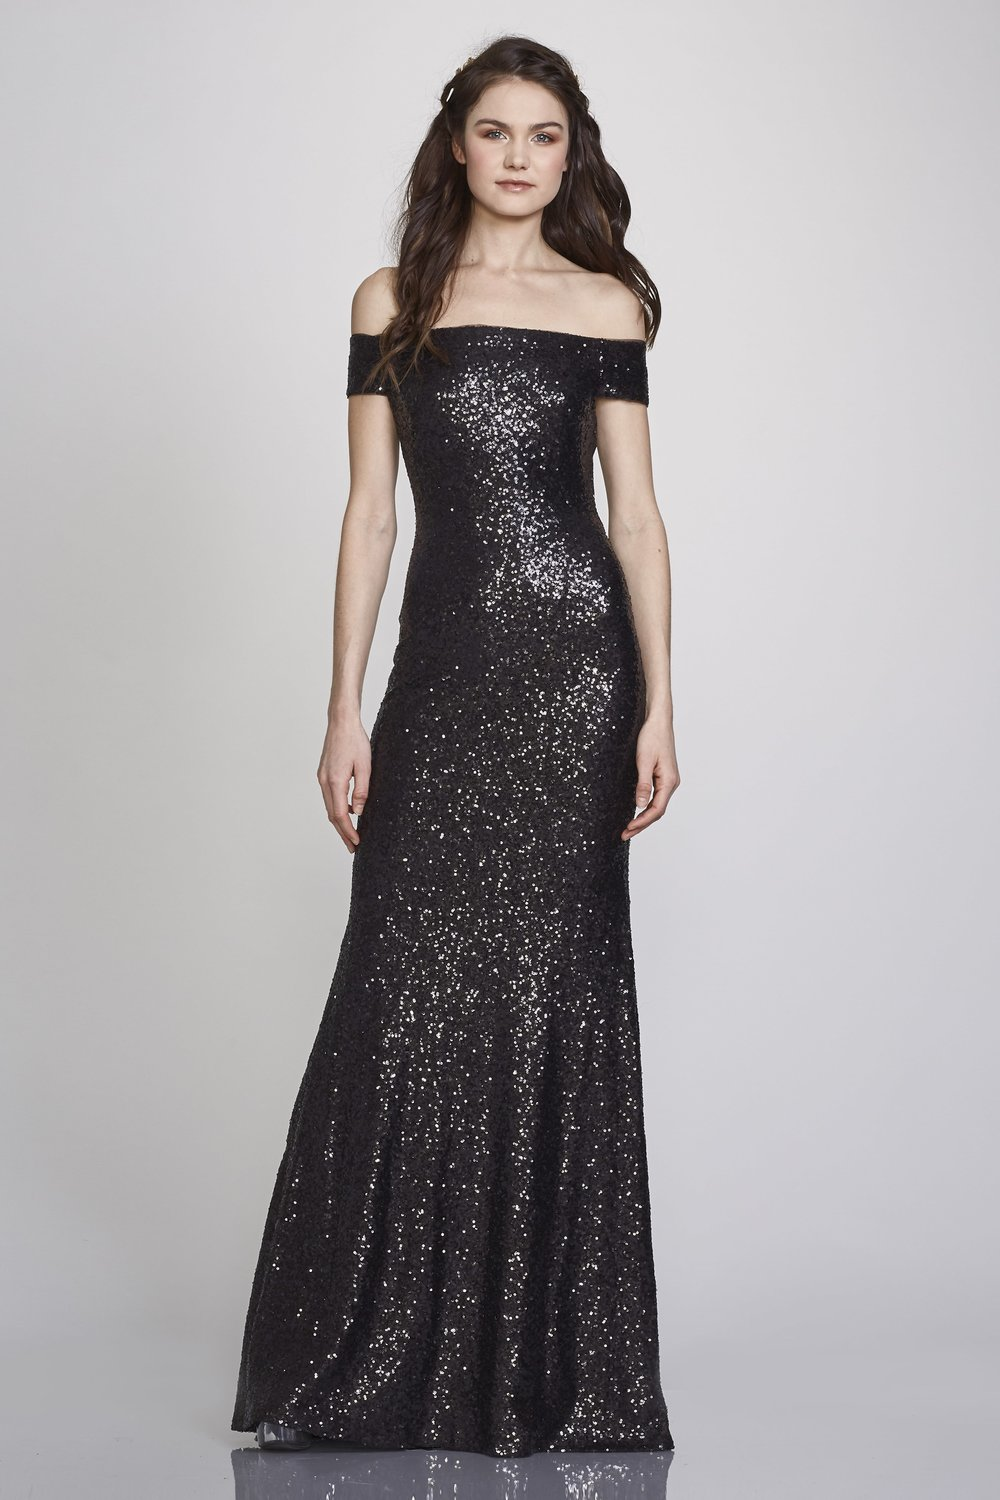 Leigh by Theia is a great off the shoulder gown with head to toe sequins